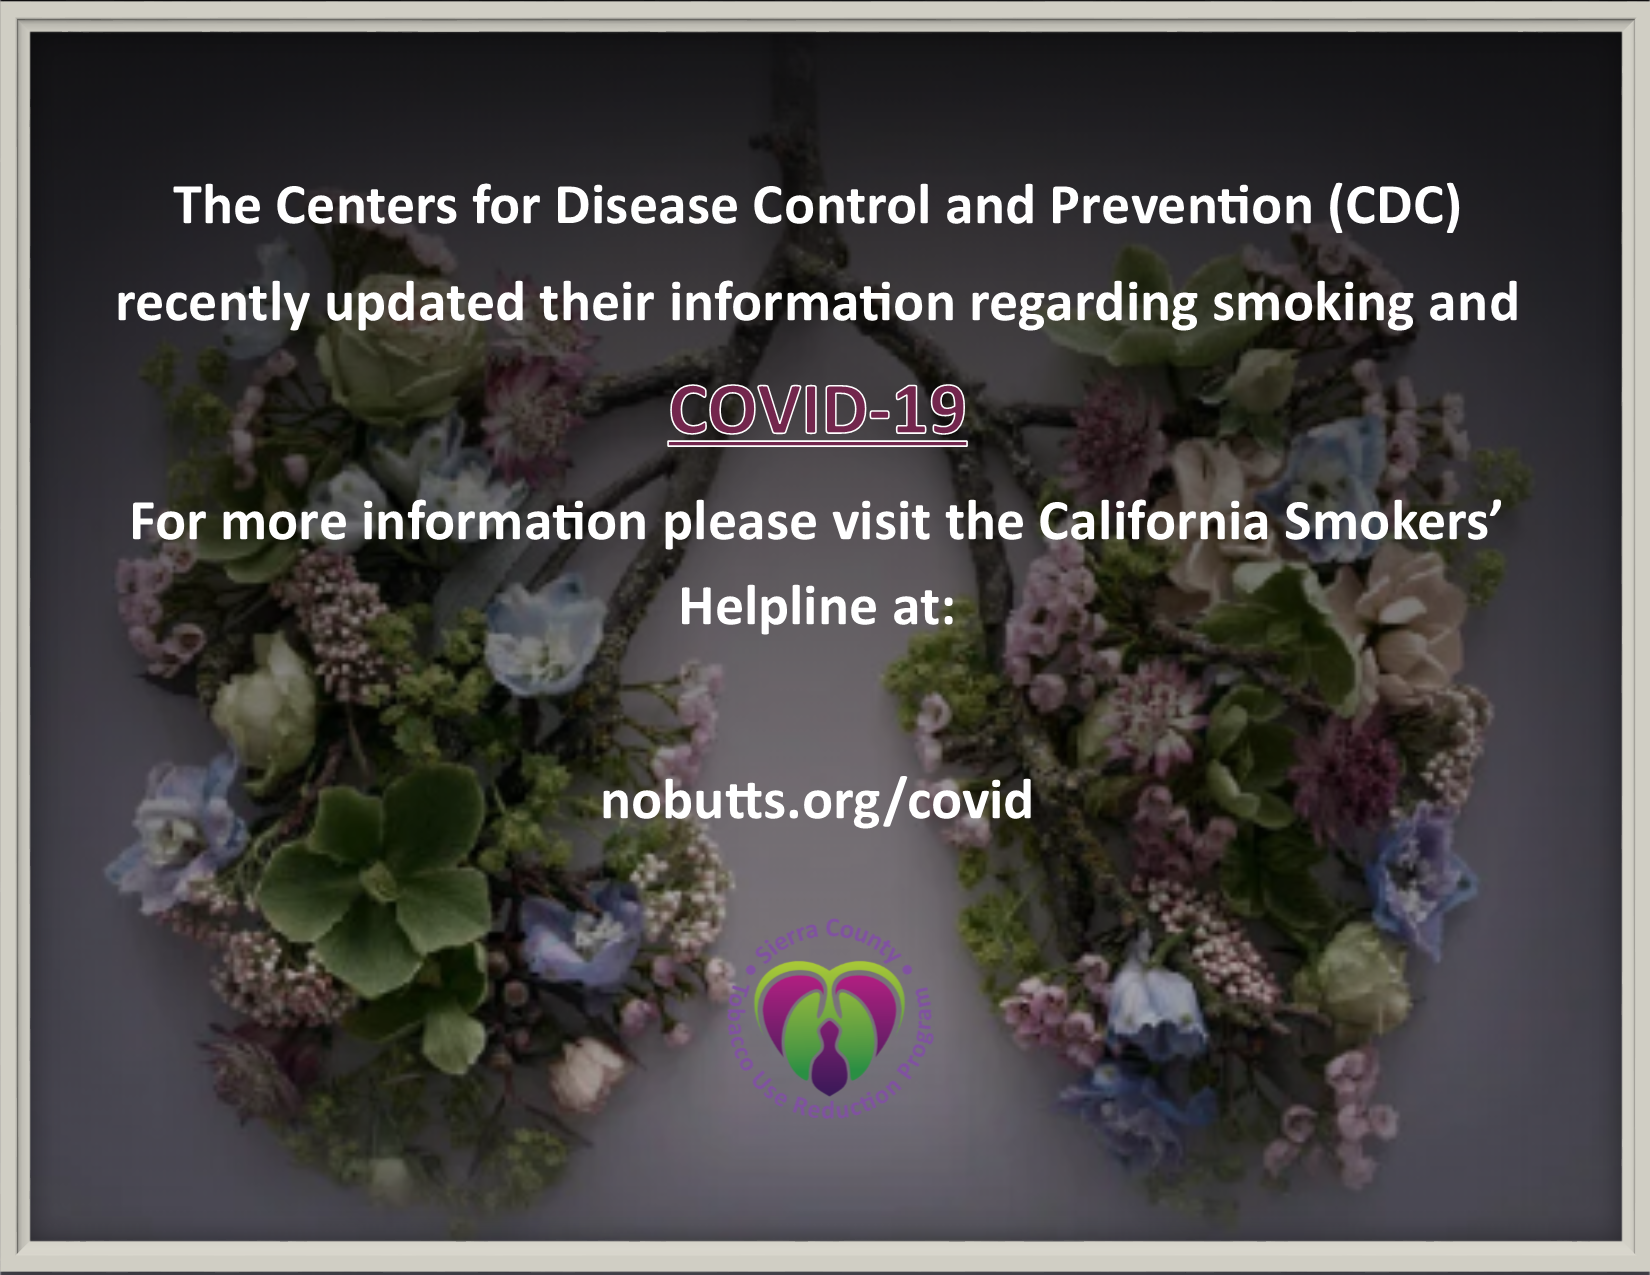 Tobacco Use and COVID-19 with link to California Smokers' Helpline